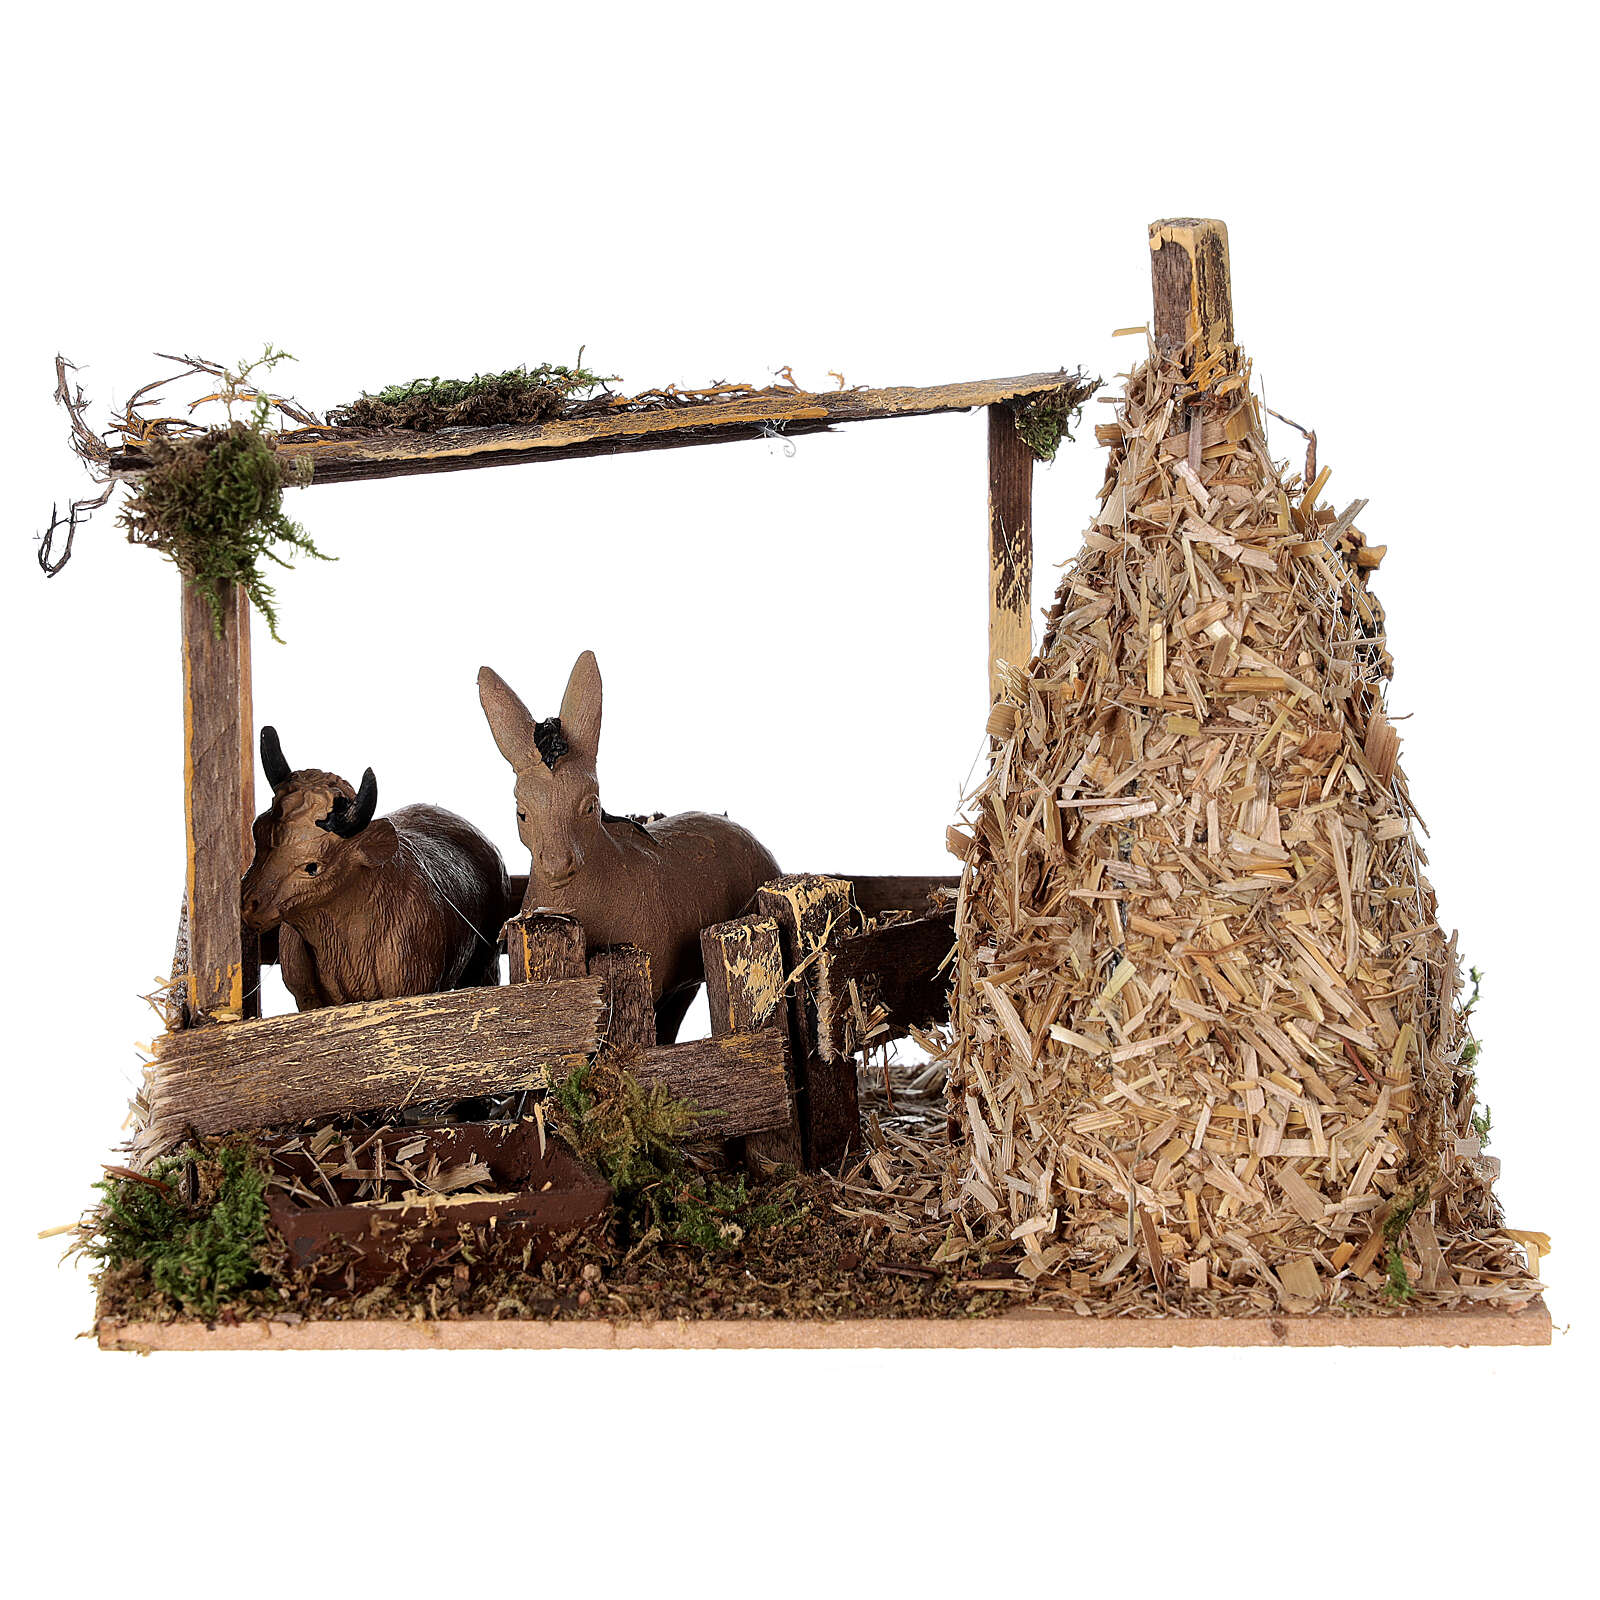 Nativity setting, fence with donkey and straw stack 11x15x10cm 4